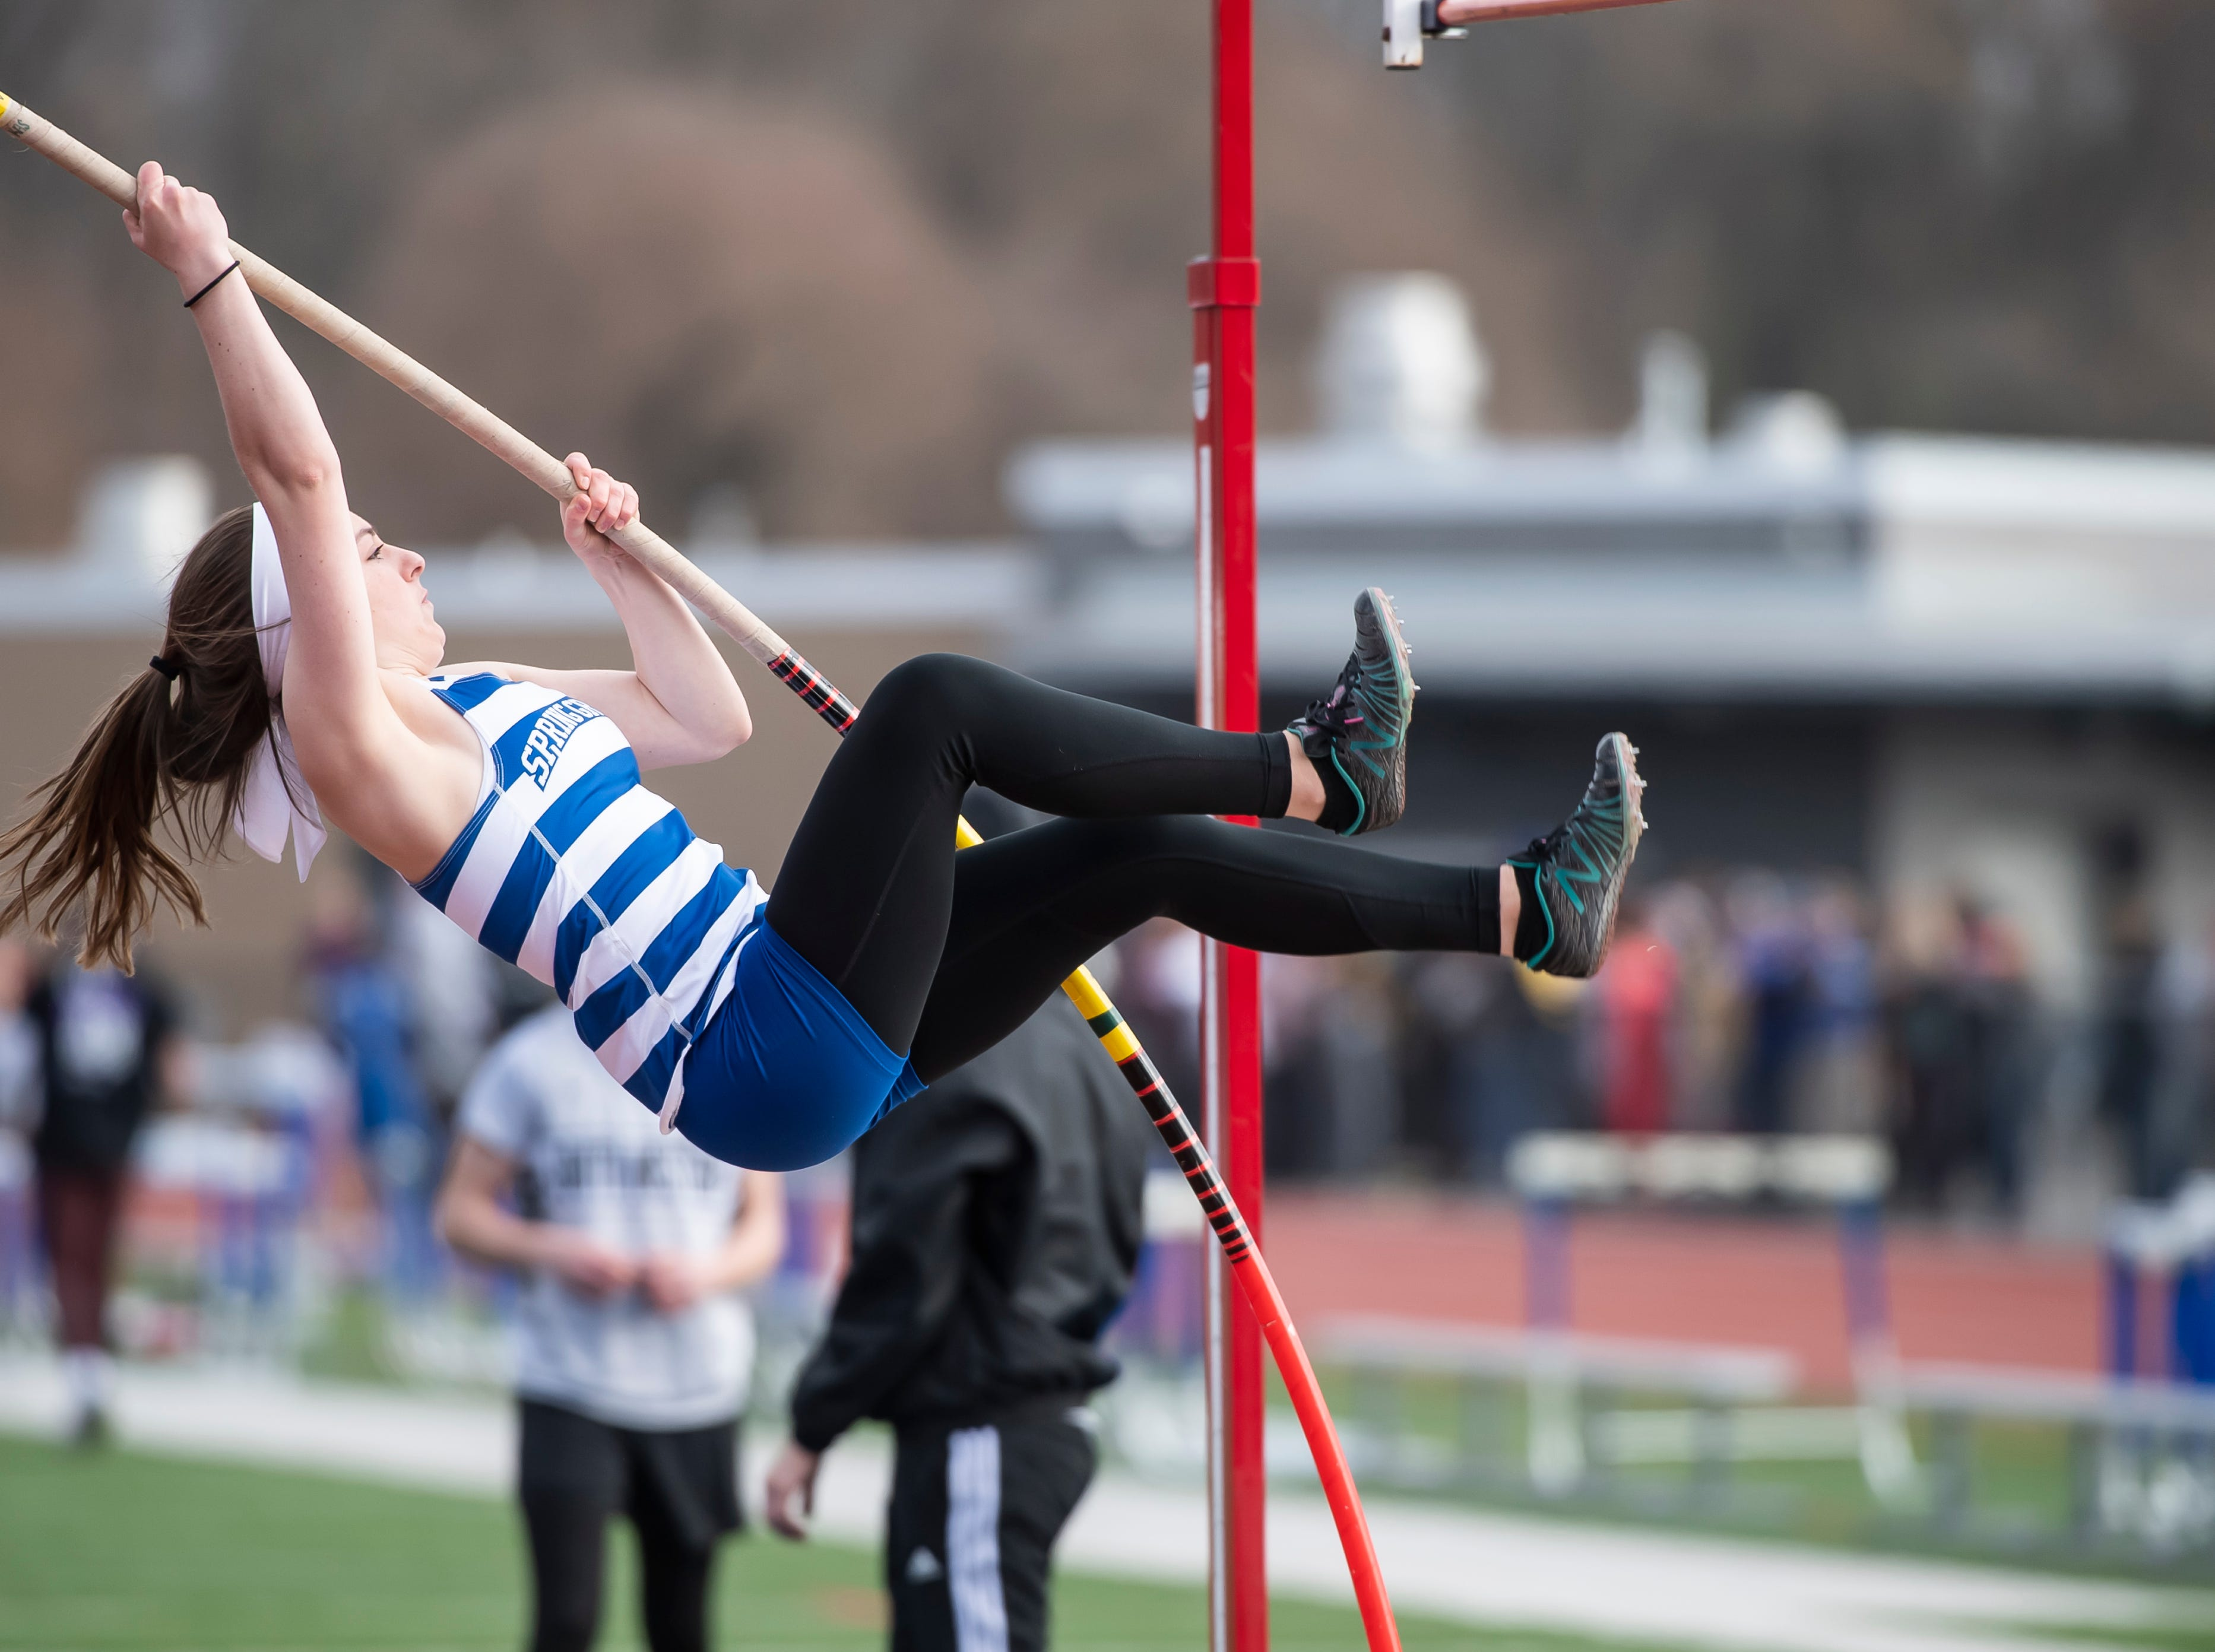 Spring Grove's Kasey Smith competes in the pole vault during a track and field meet against South Western on Thursday, April 11, 2019.